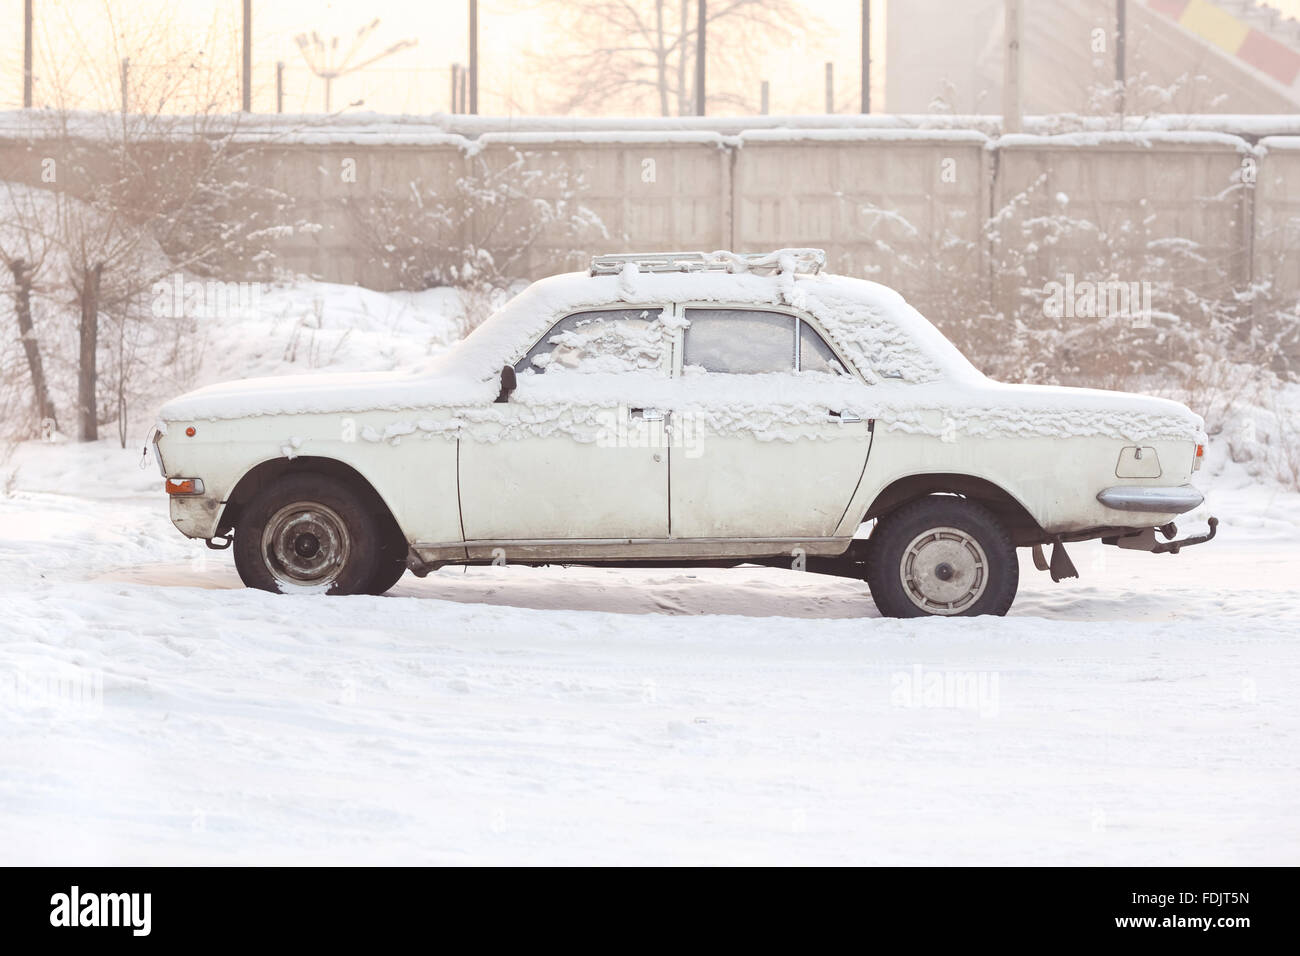 Abandoned car covered with snow in winter at sunset, warm tones, side view. Rusting, recycling, metal processing, - Stock Image